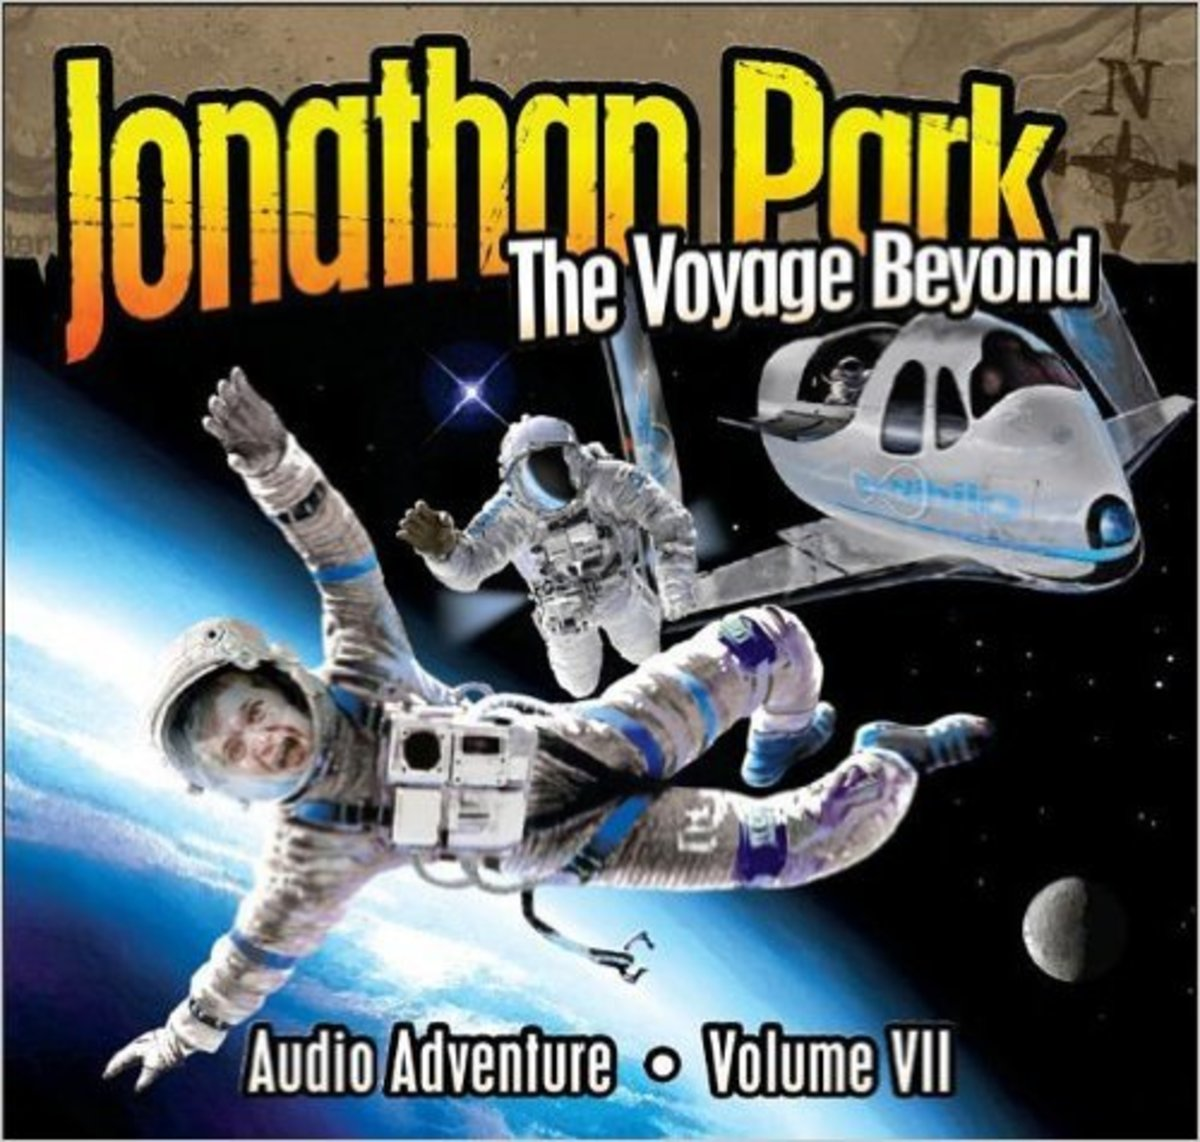 The Voyage Beyond (Jonathan Park Radio Drama) Audio CD by Pat Roy and Douglas W. Phillips - Image credit: amazon.com